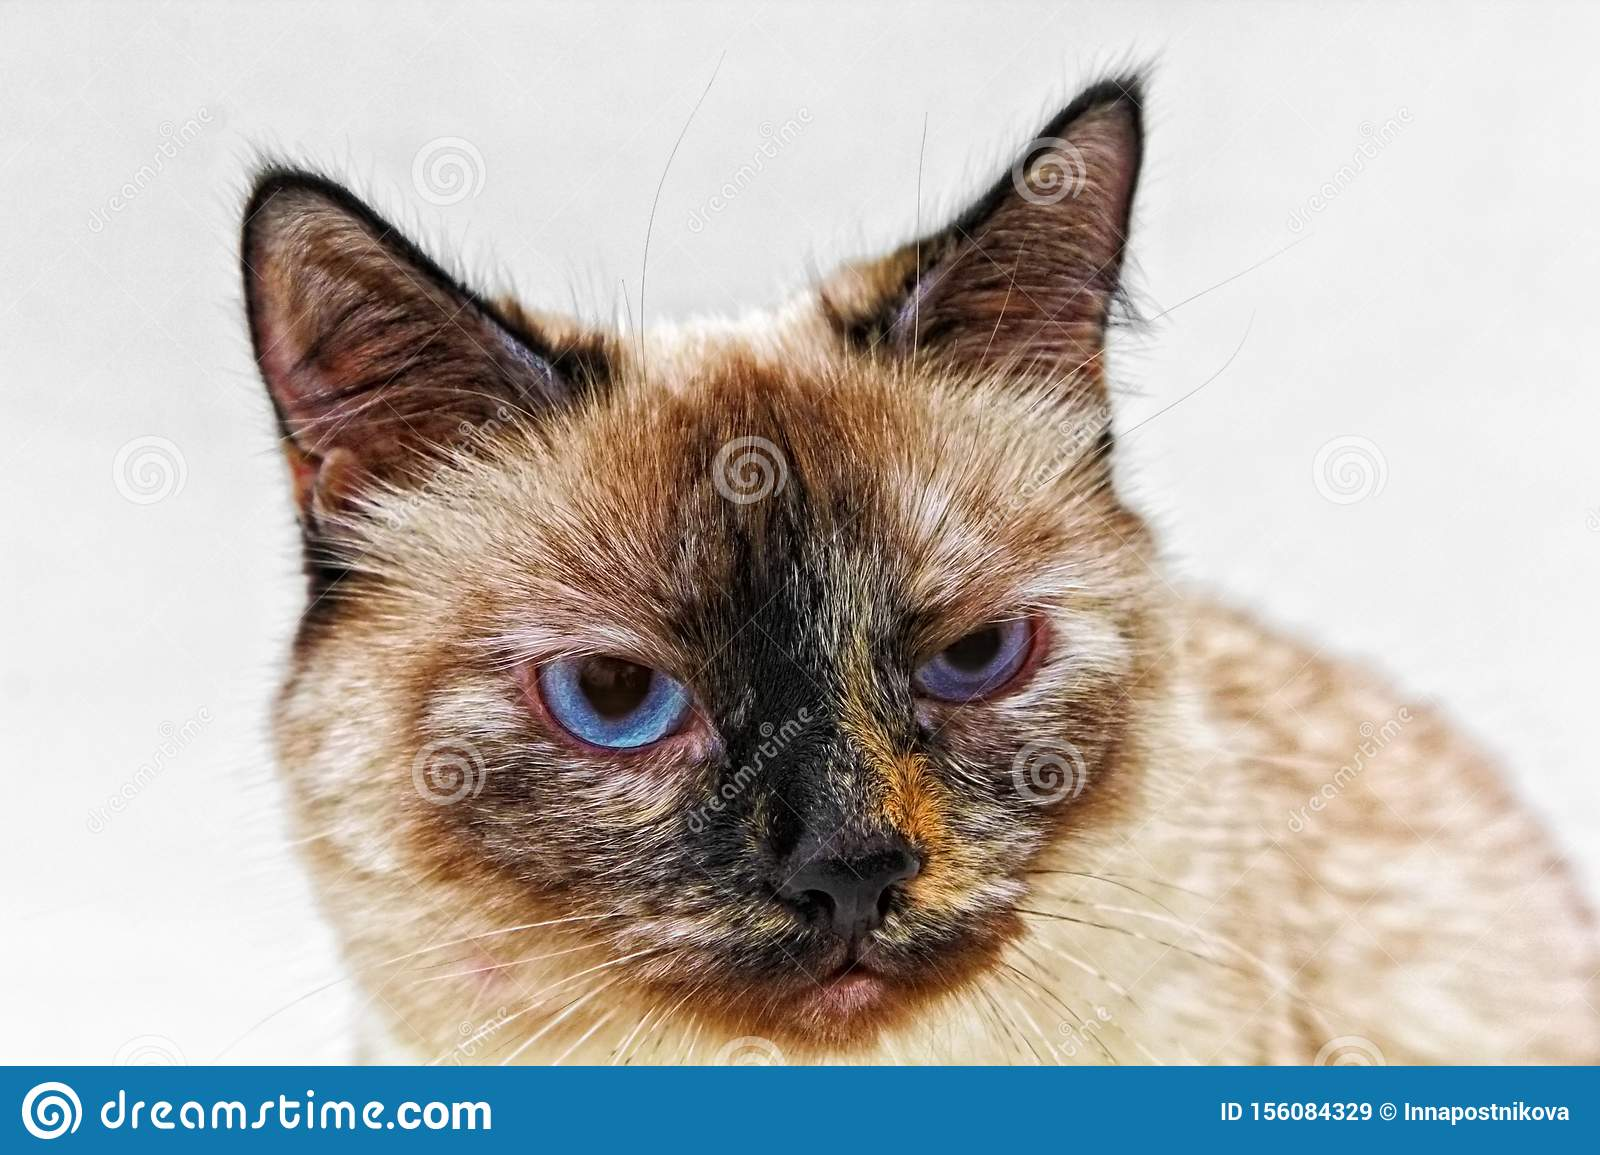 Cat Looks Like Grumpy Cat With Emotional Face On White Background Stock Image Image Of Beautiful Ugly 156084329